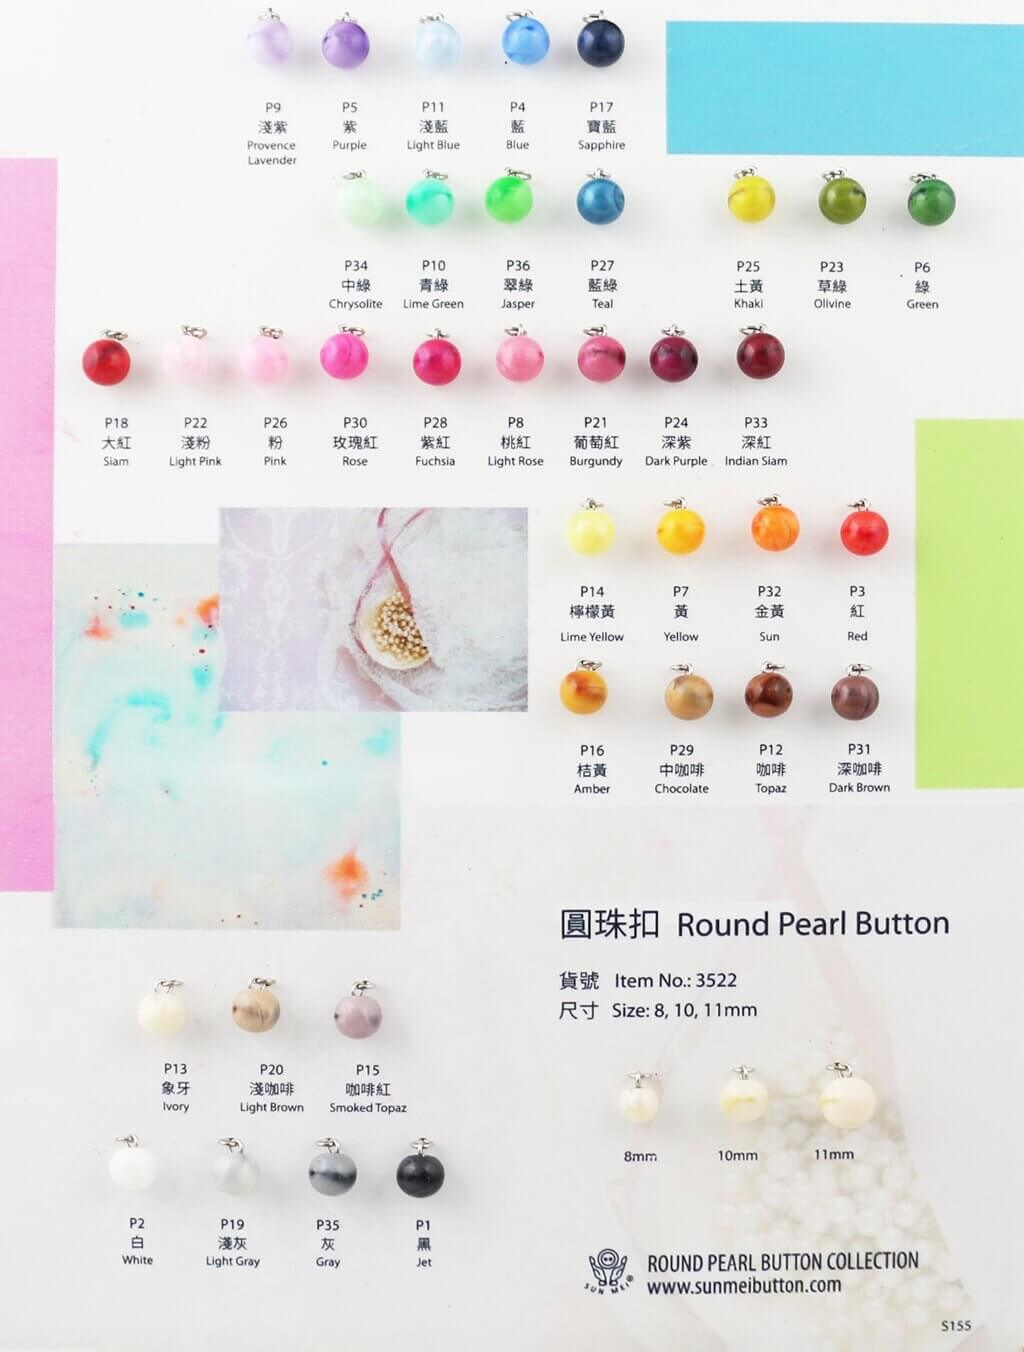 S155V2-round pearl buttons for shirts